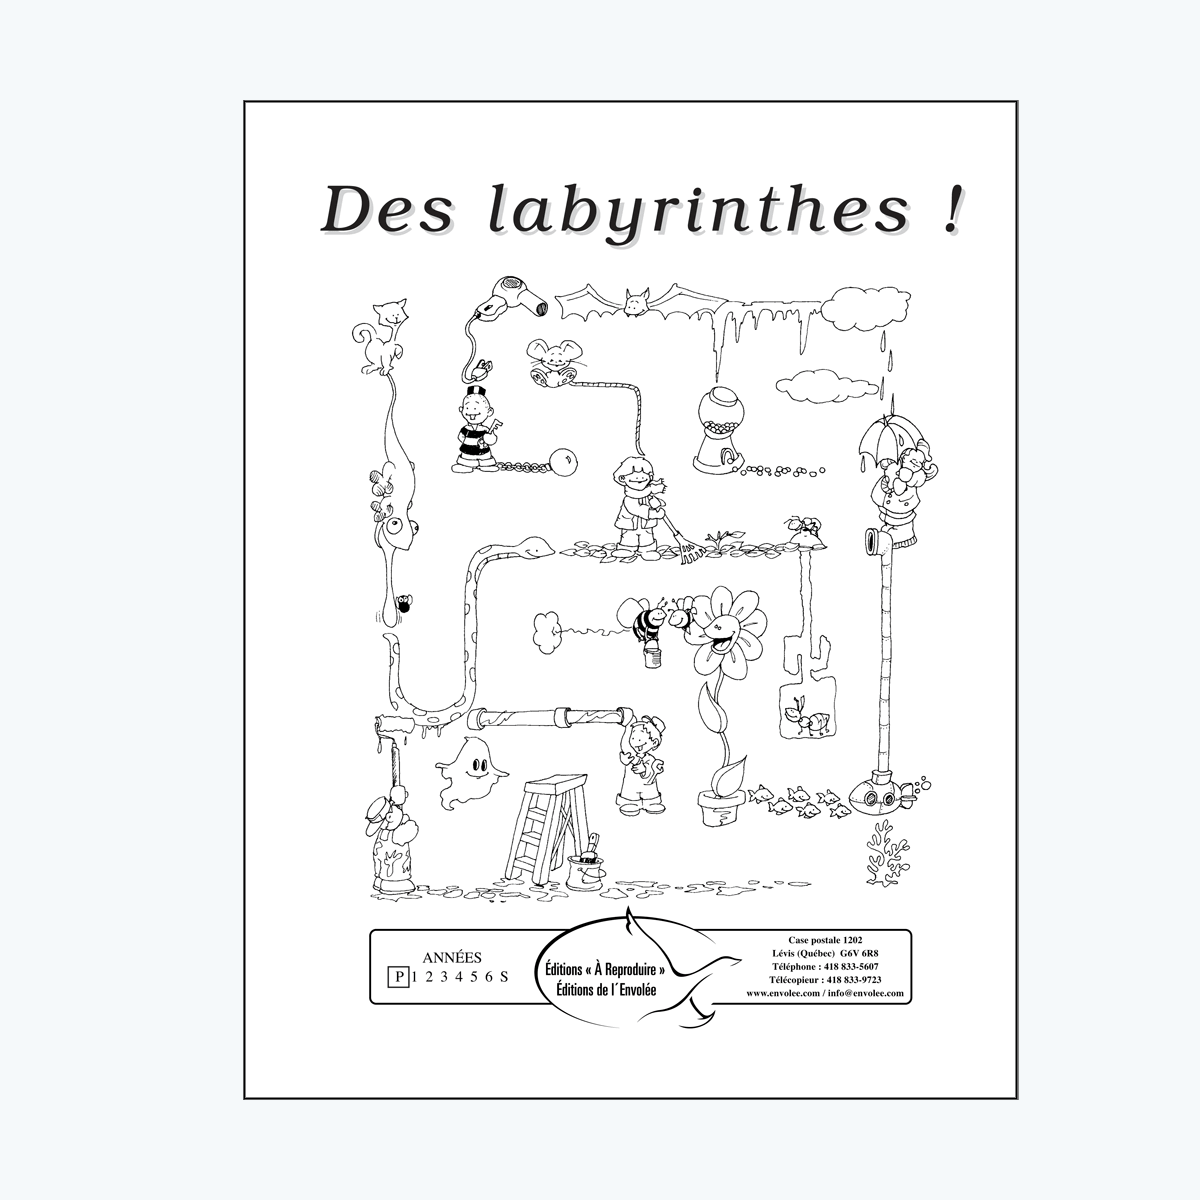 Des labyrinthes !